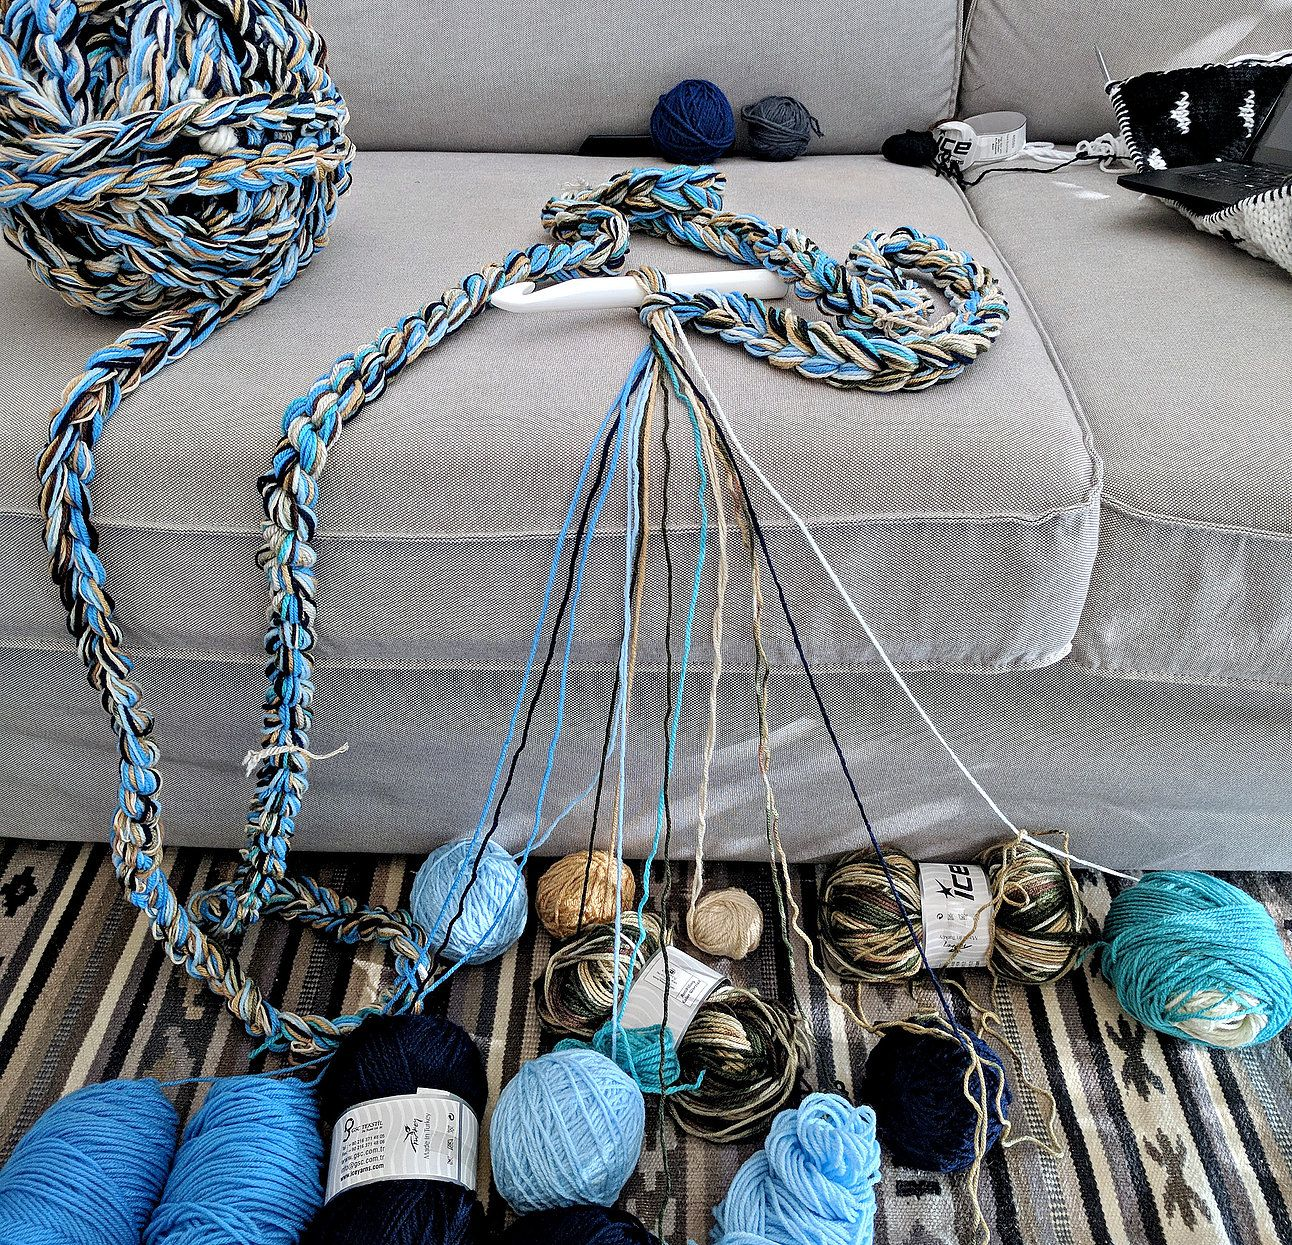 The Ultimate Yarn Stash Buster - How to Make Chunky Yarn For Arm Knitting | The Snugglery | Knitting and Crocheting Blog